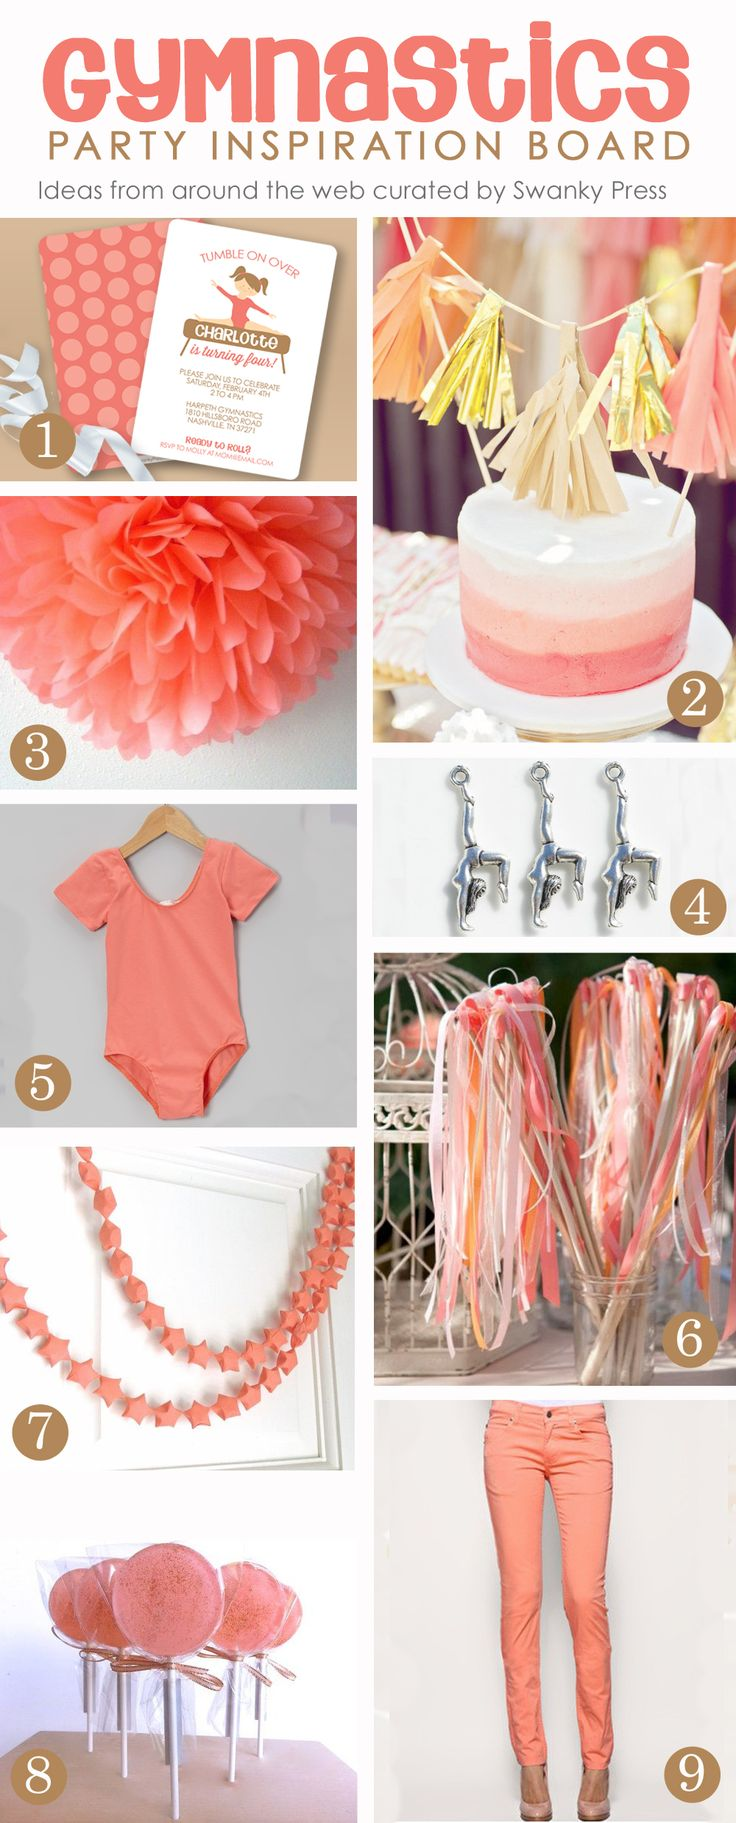 Love this party idea! gymnastics party inspiration coral color scheme  #gymnastics #partyidea #gymnasticsparty #coral #partyfavor #coralparty